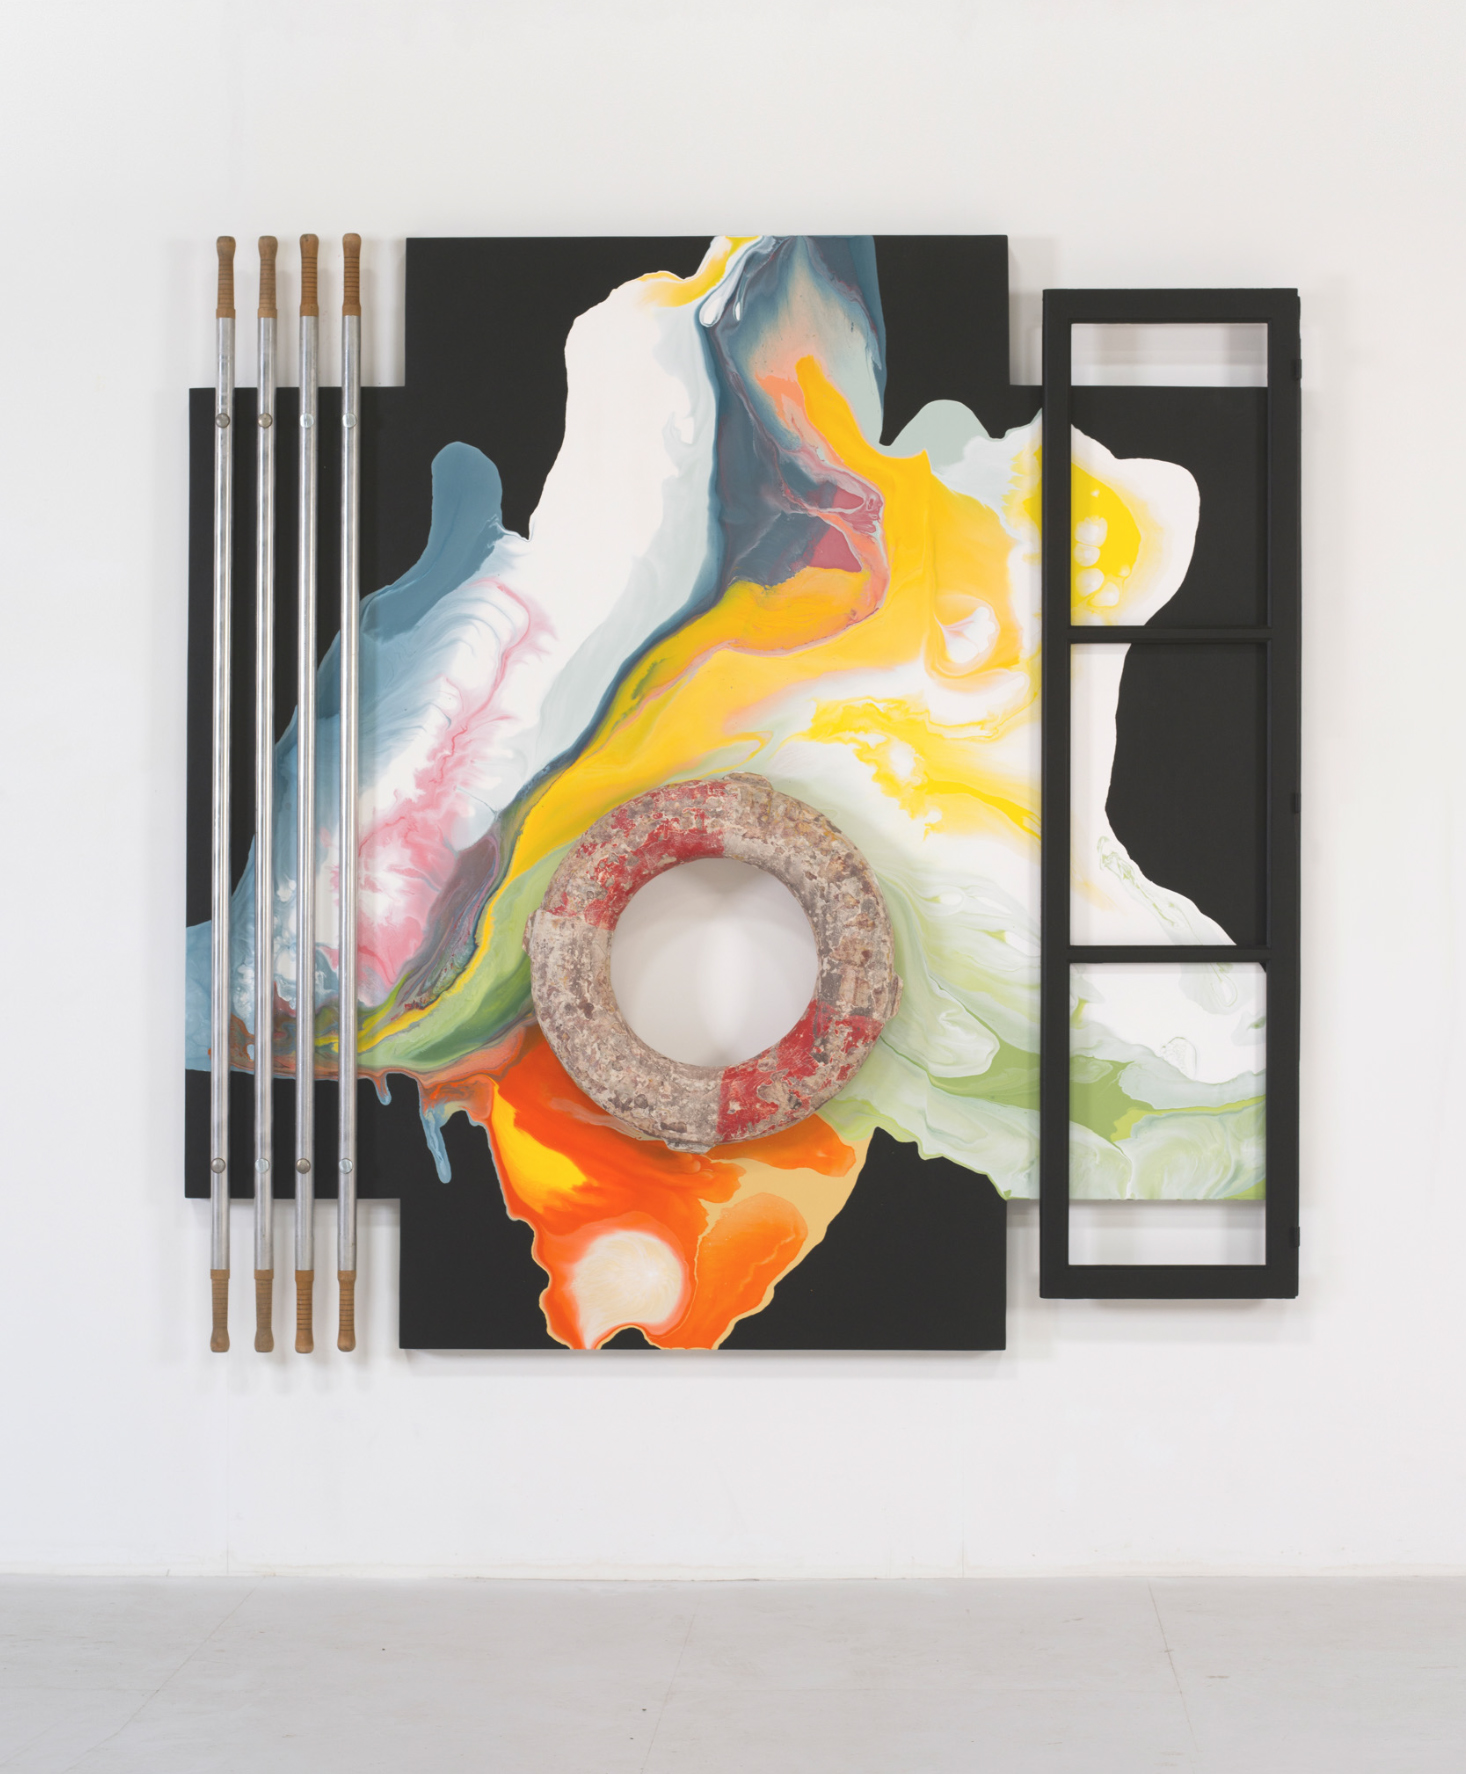 Lucy + Jorge Orta  Untitled, 2016 polyurethane, aluminum stretcher bars, life preserver and window frame on wood 90.55 x 90.55 inches 230 x 230 cm